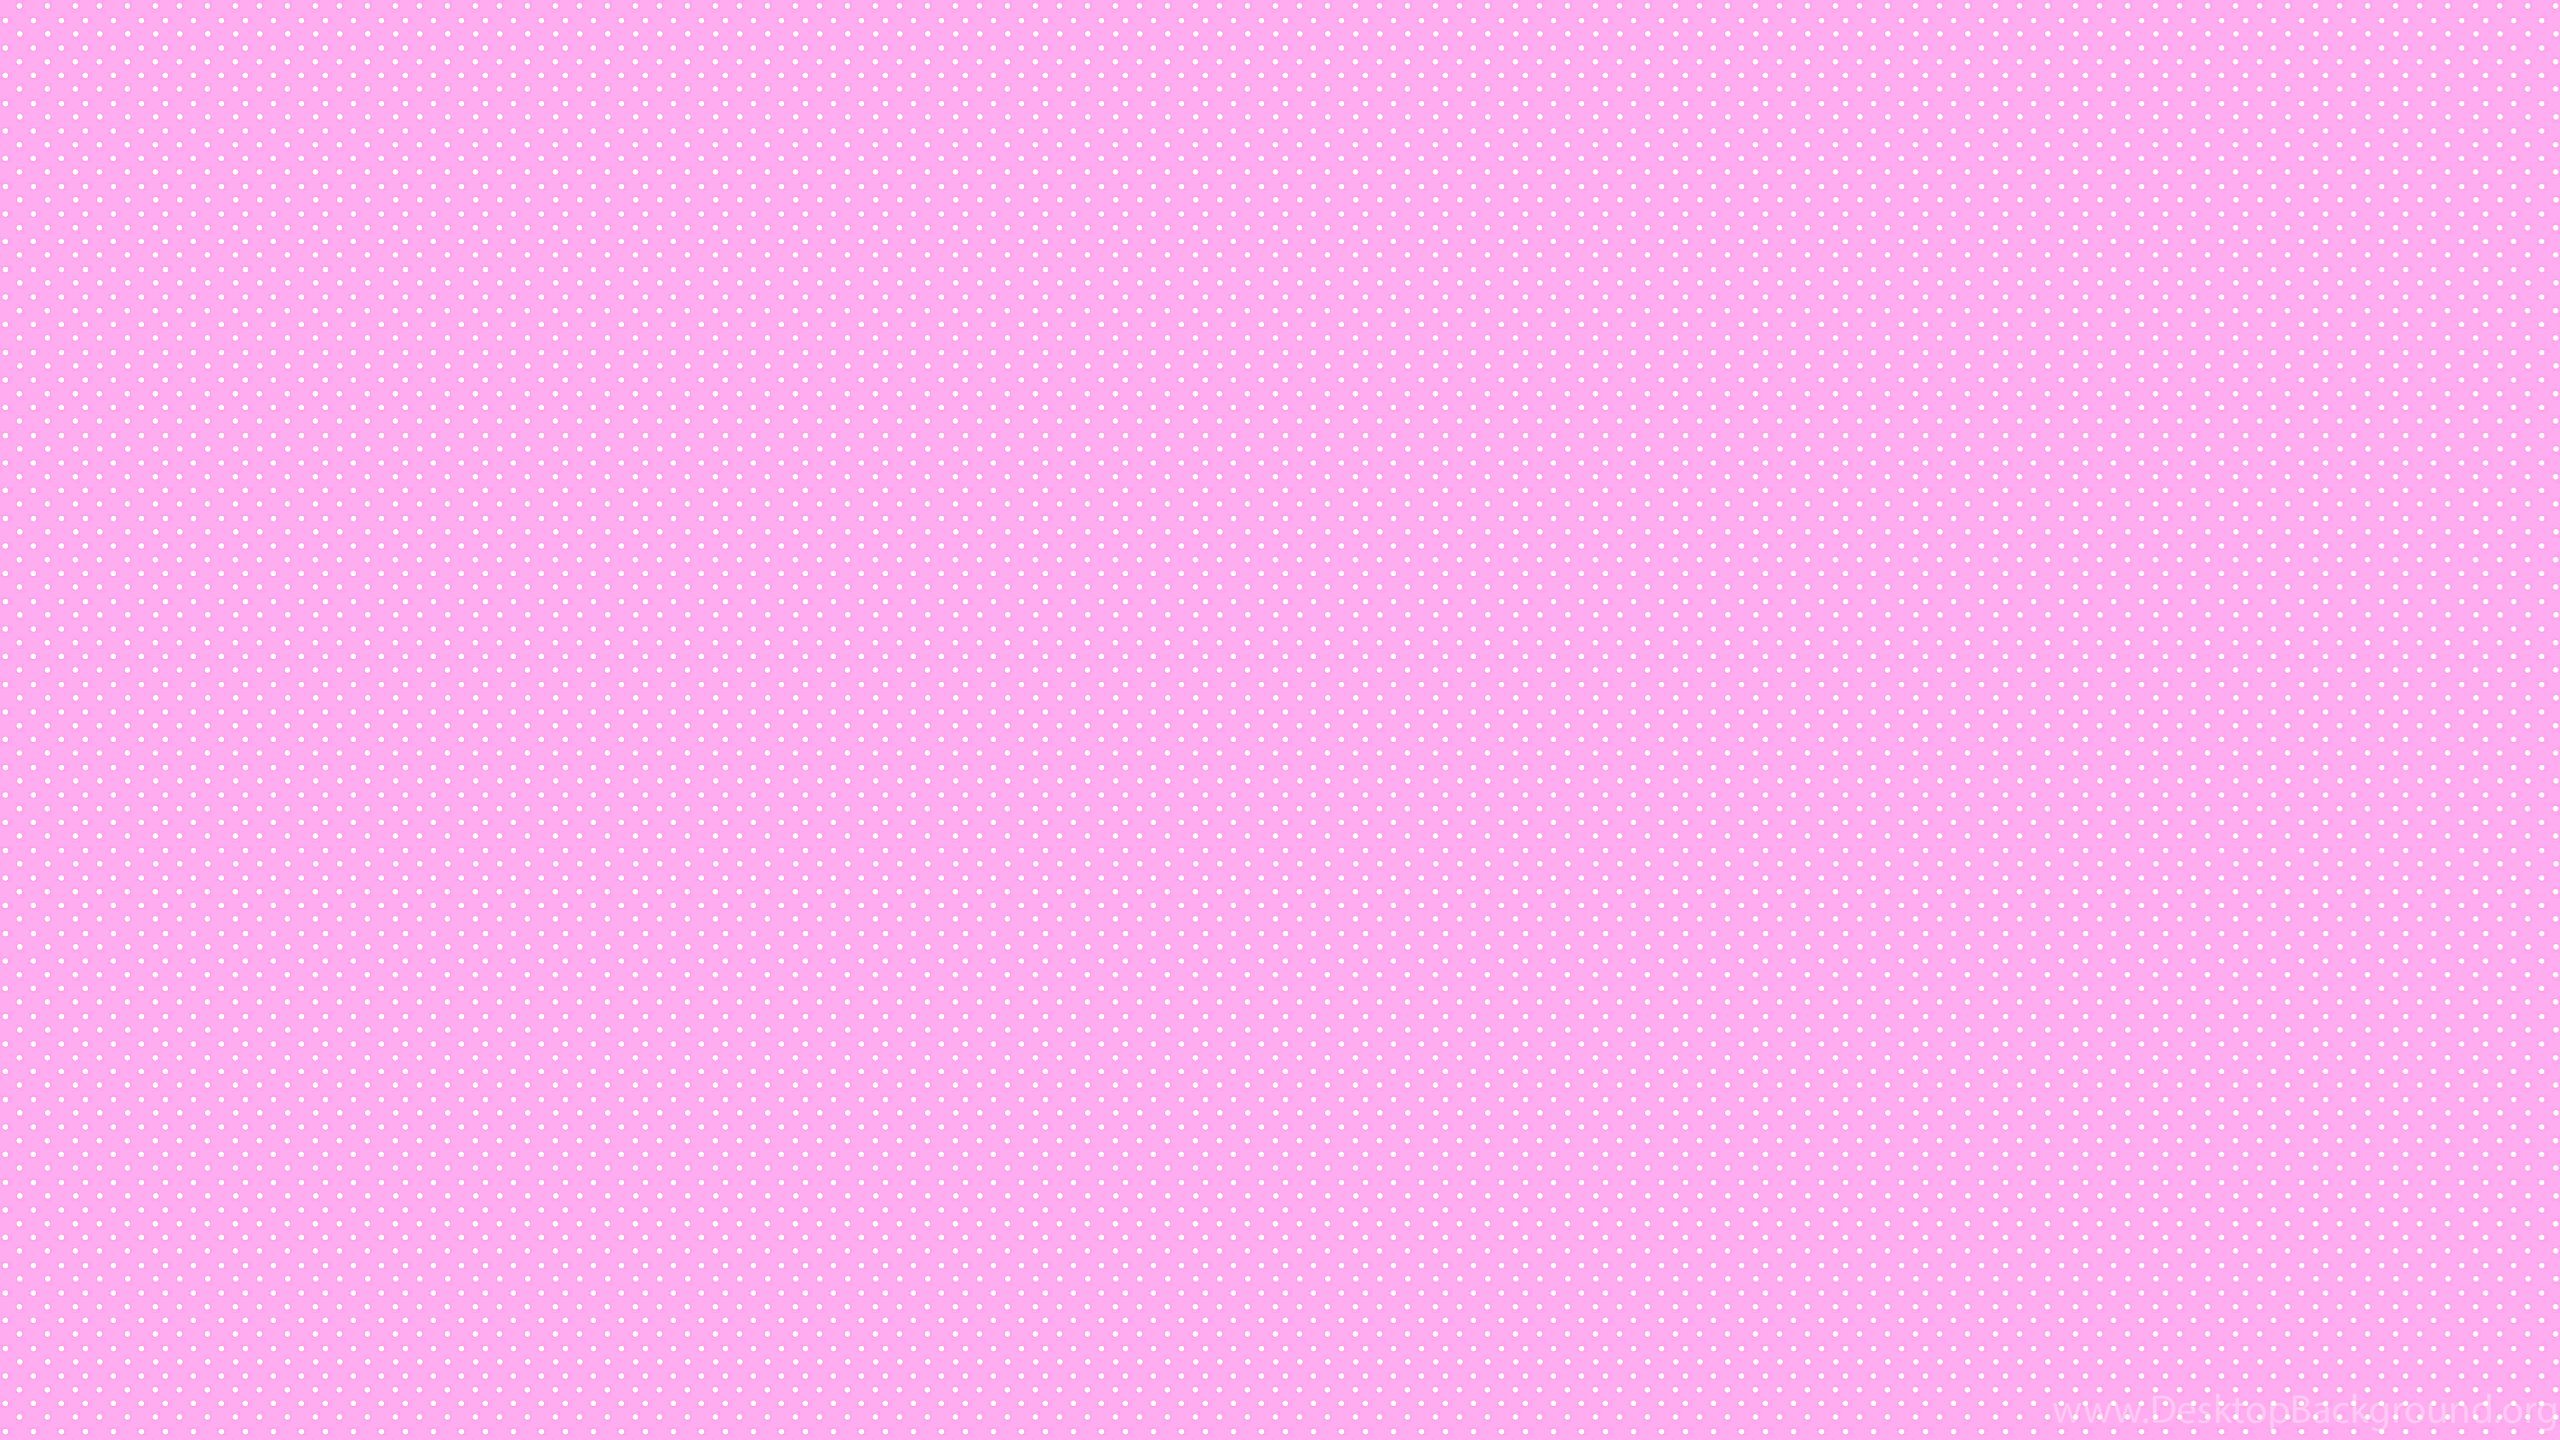 Background, Wallpaper, Tumblr, Plain, Pink, Wallpapers